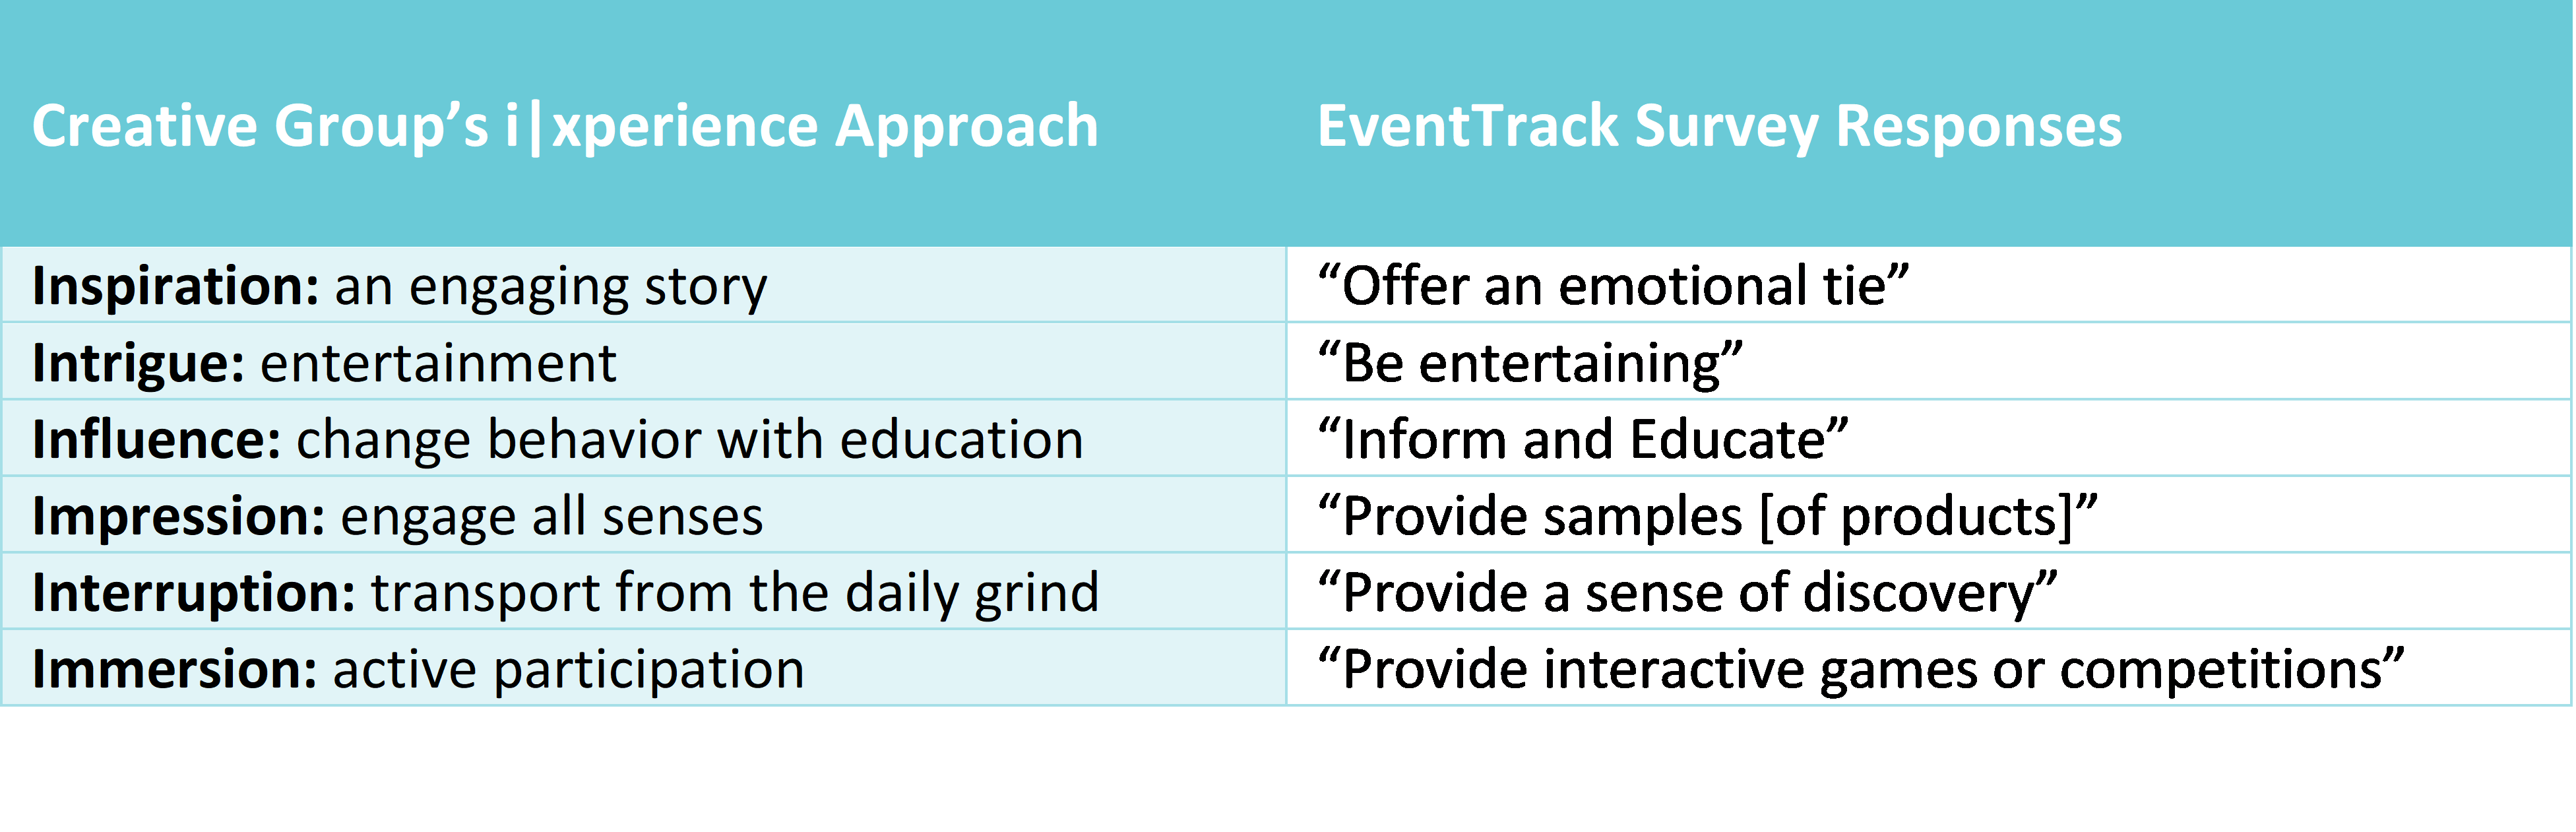 EventTrack Survey Responses